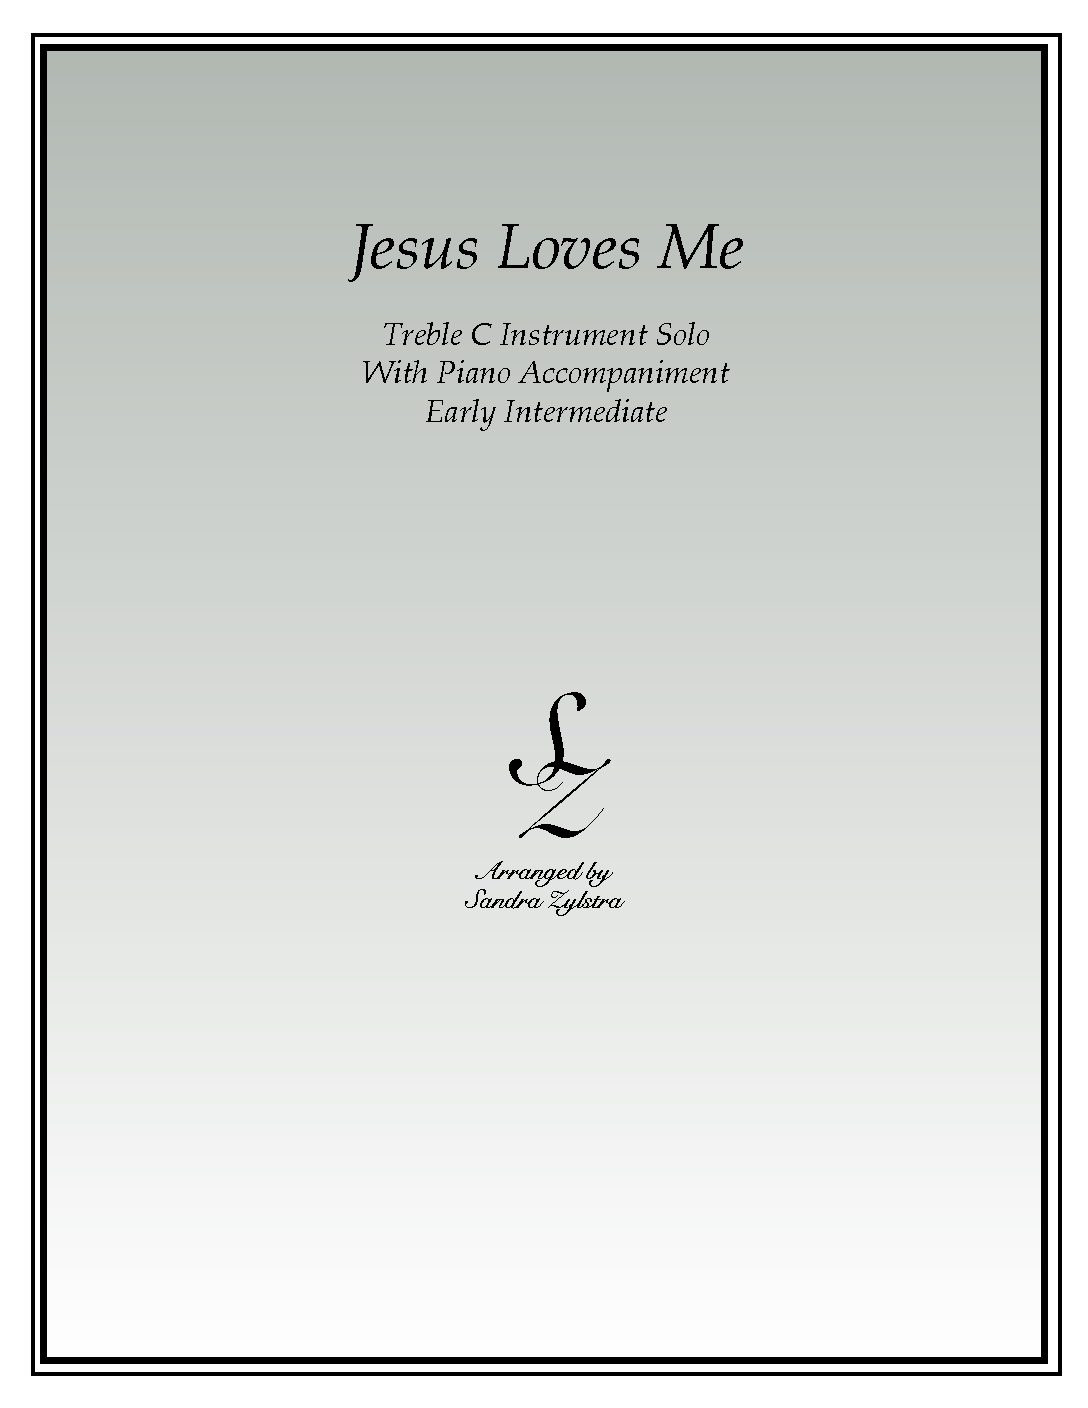 Jesus Loves Me -Treble C Instrument Solo